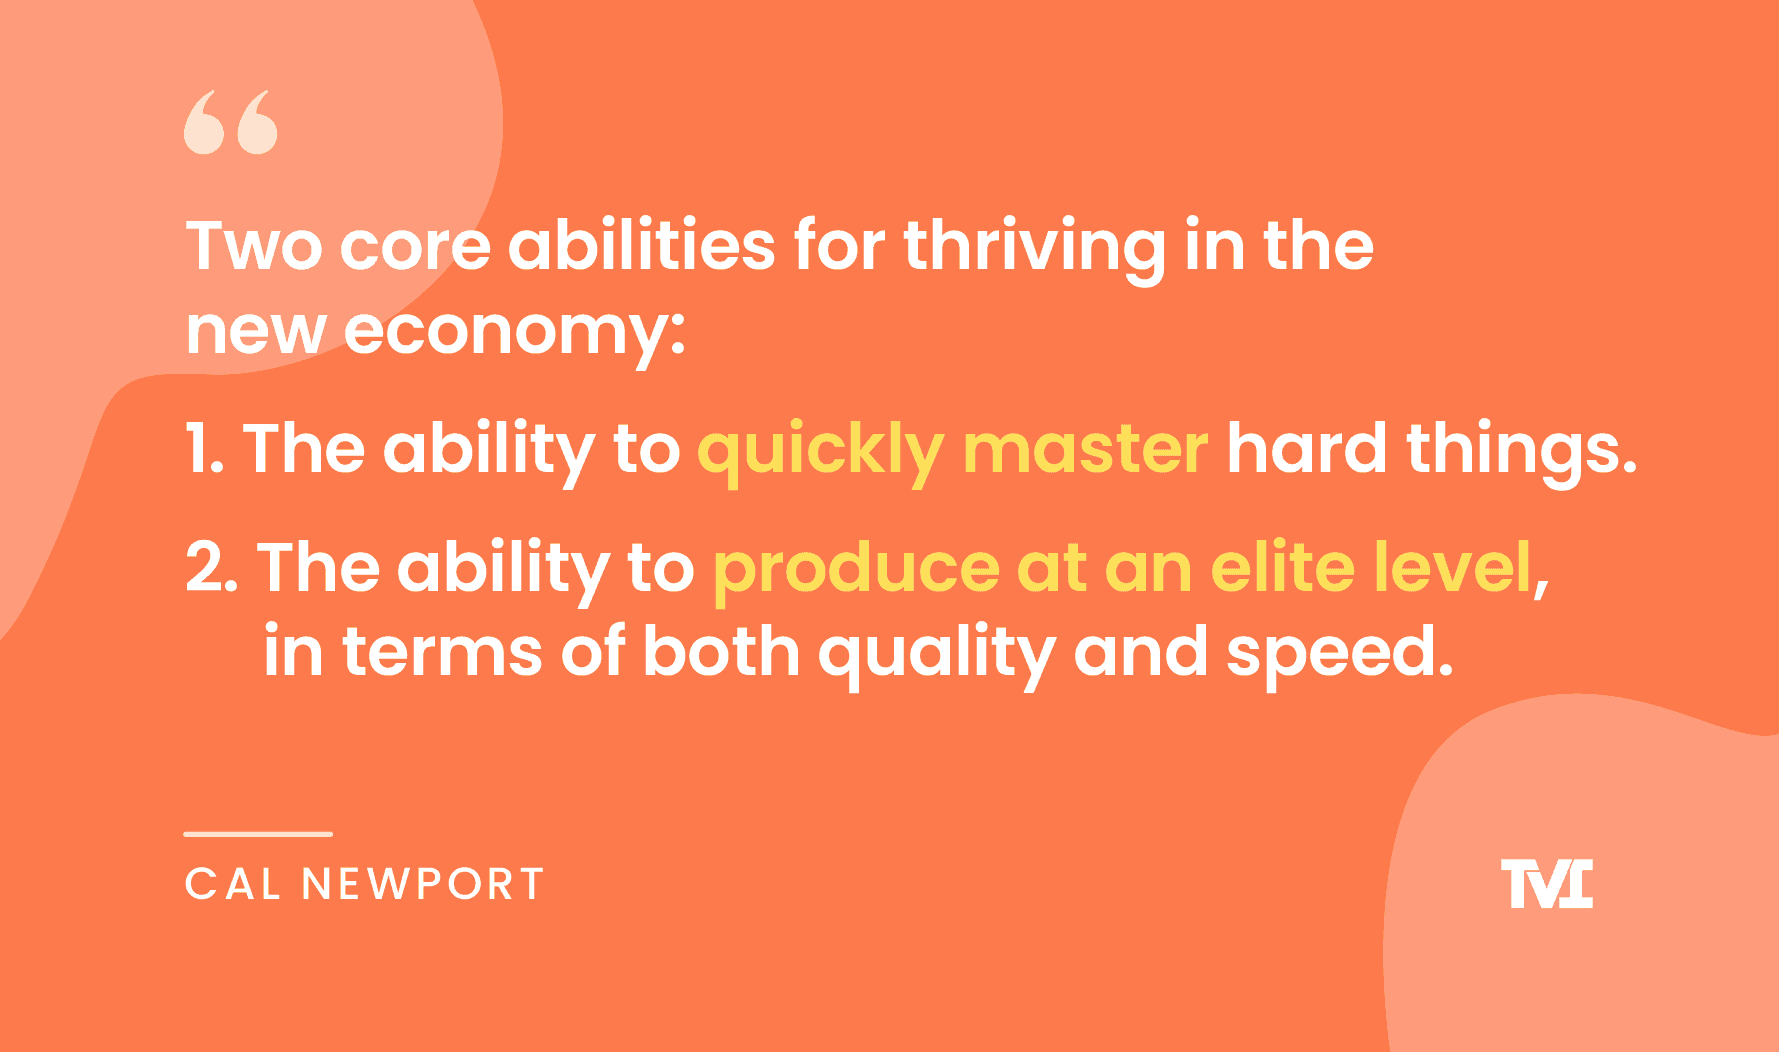 """productivity quotes: """"Two core abilities for thriving in the new economy: 1. The ability to quickly master hard things. 2. The ability to produce at an elite level, in terms of both quality and speed."""" —Cal Newport"""